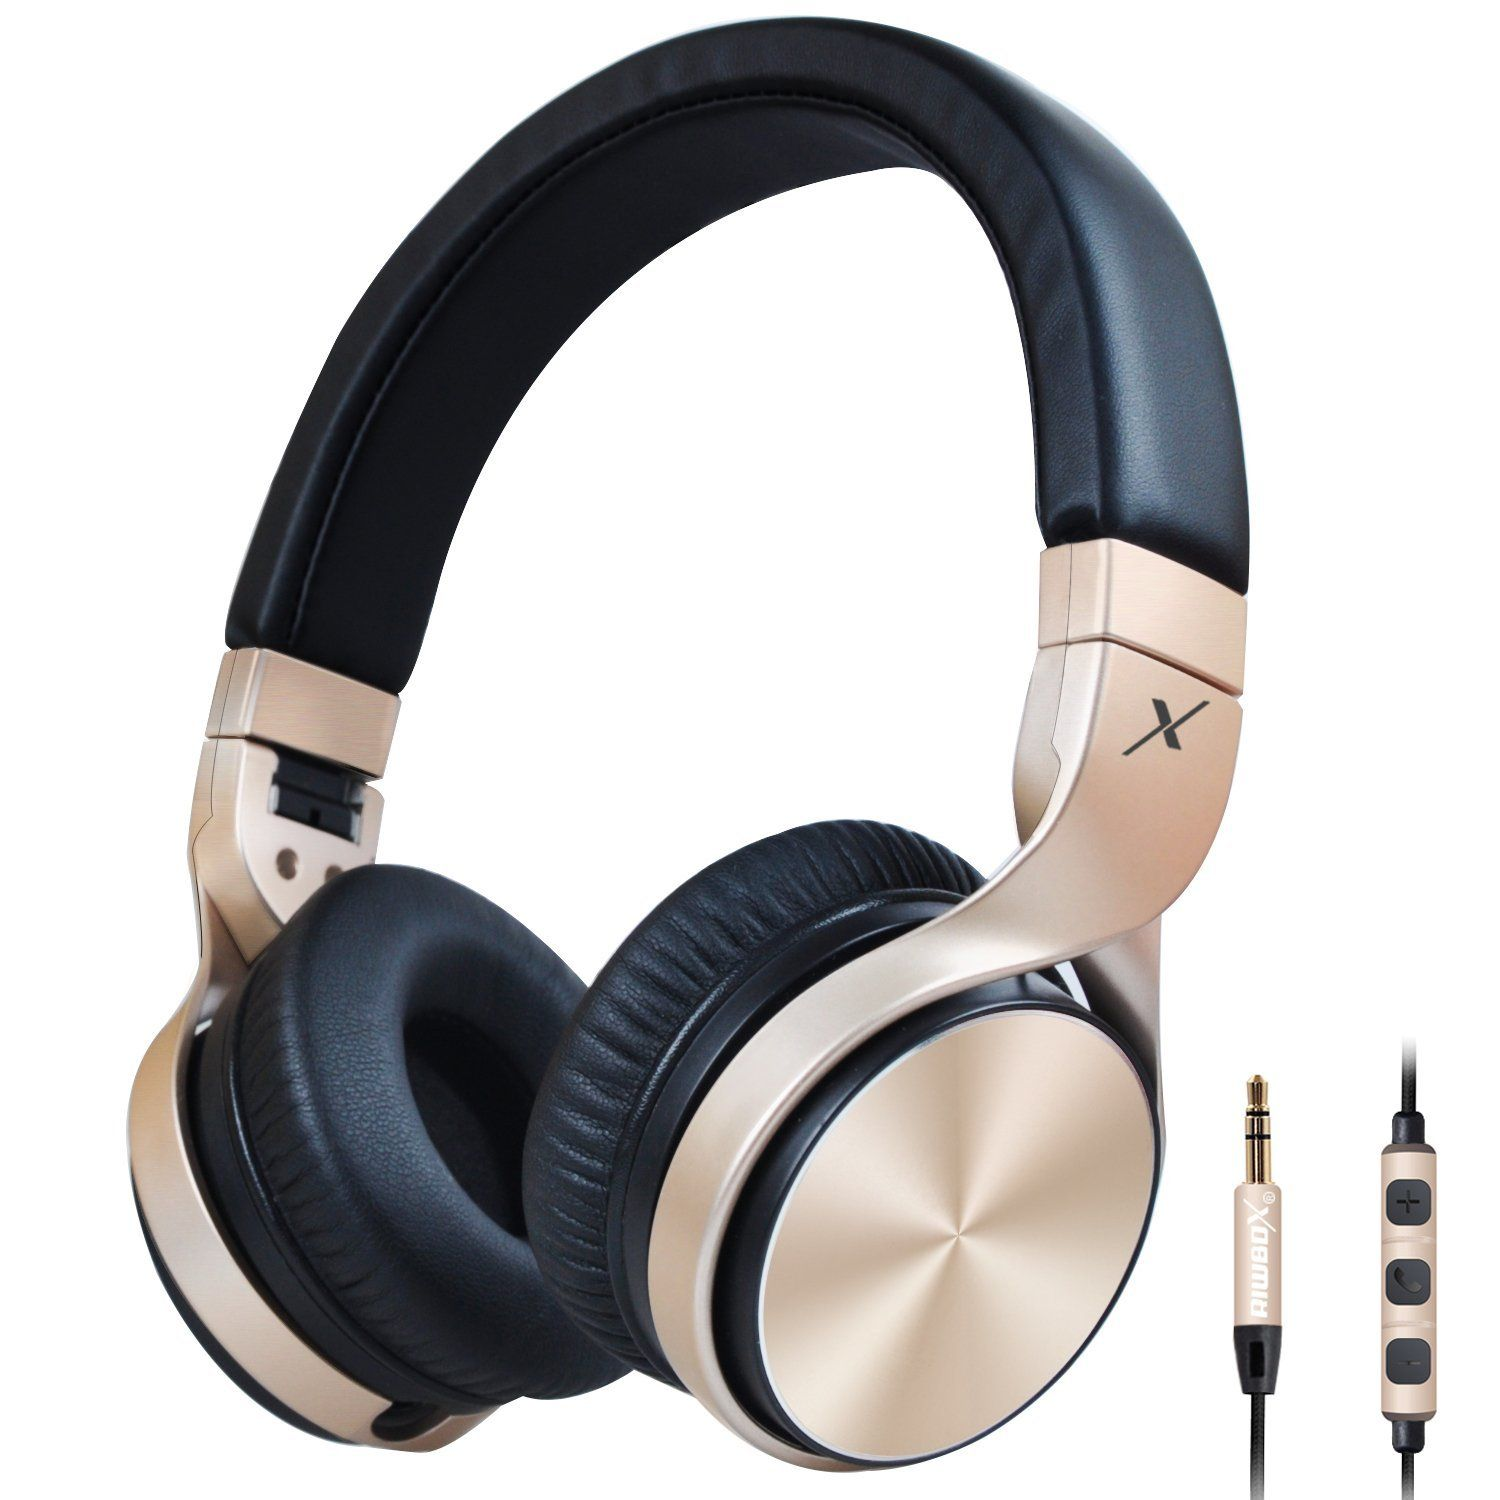 Black gold # foldableheadphones with microphone and volume